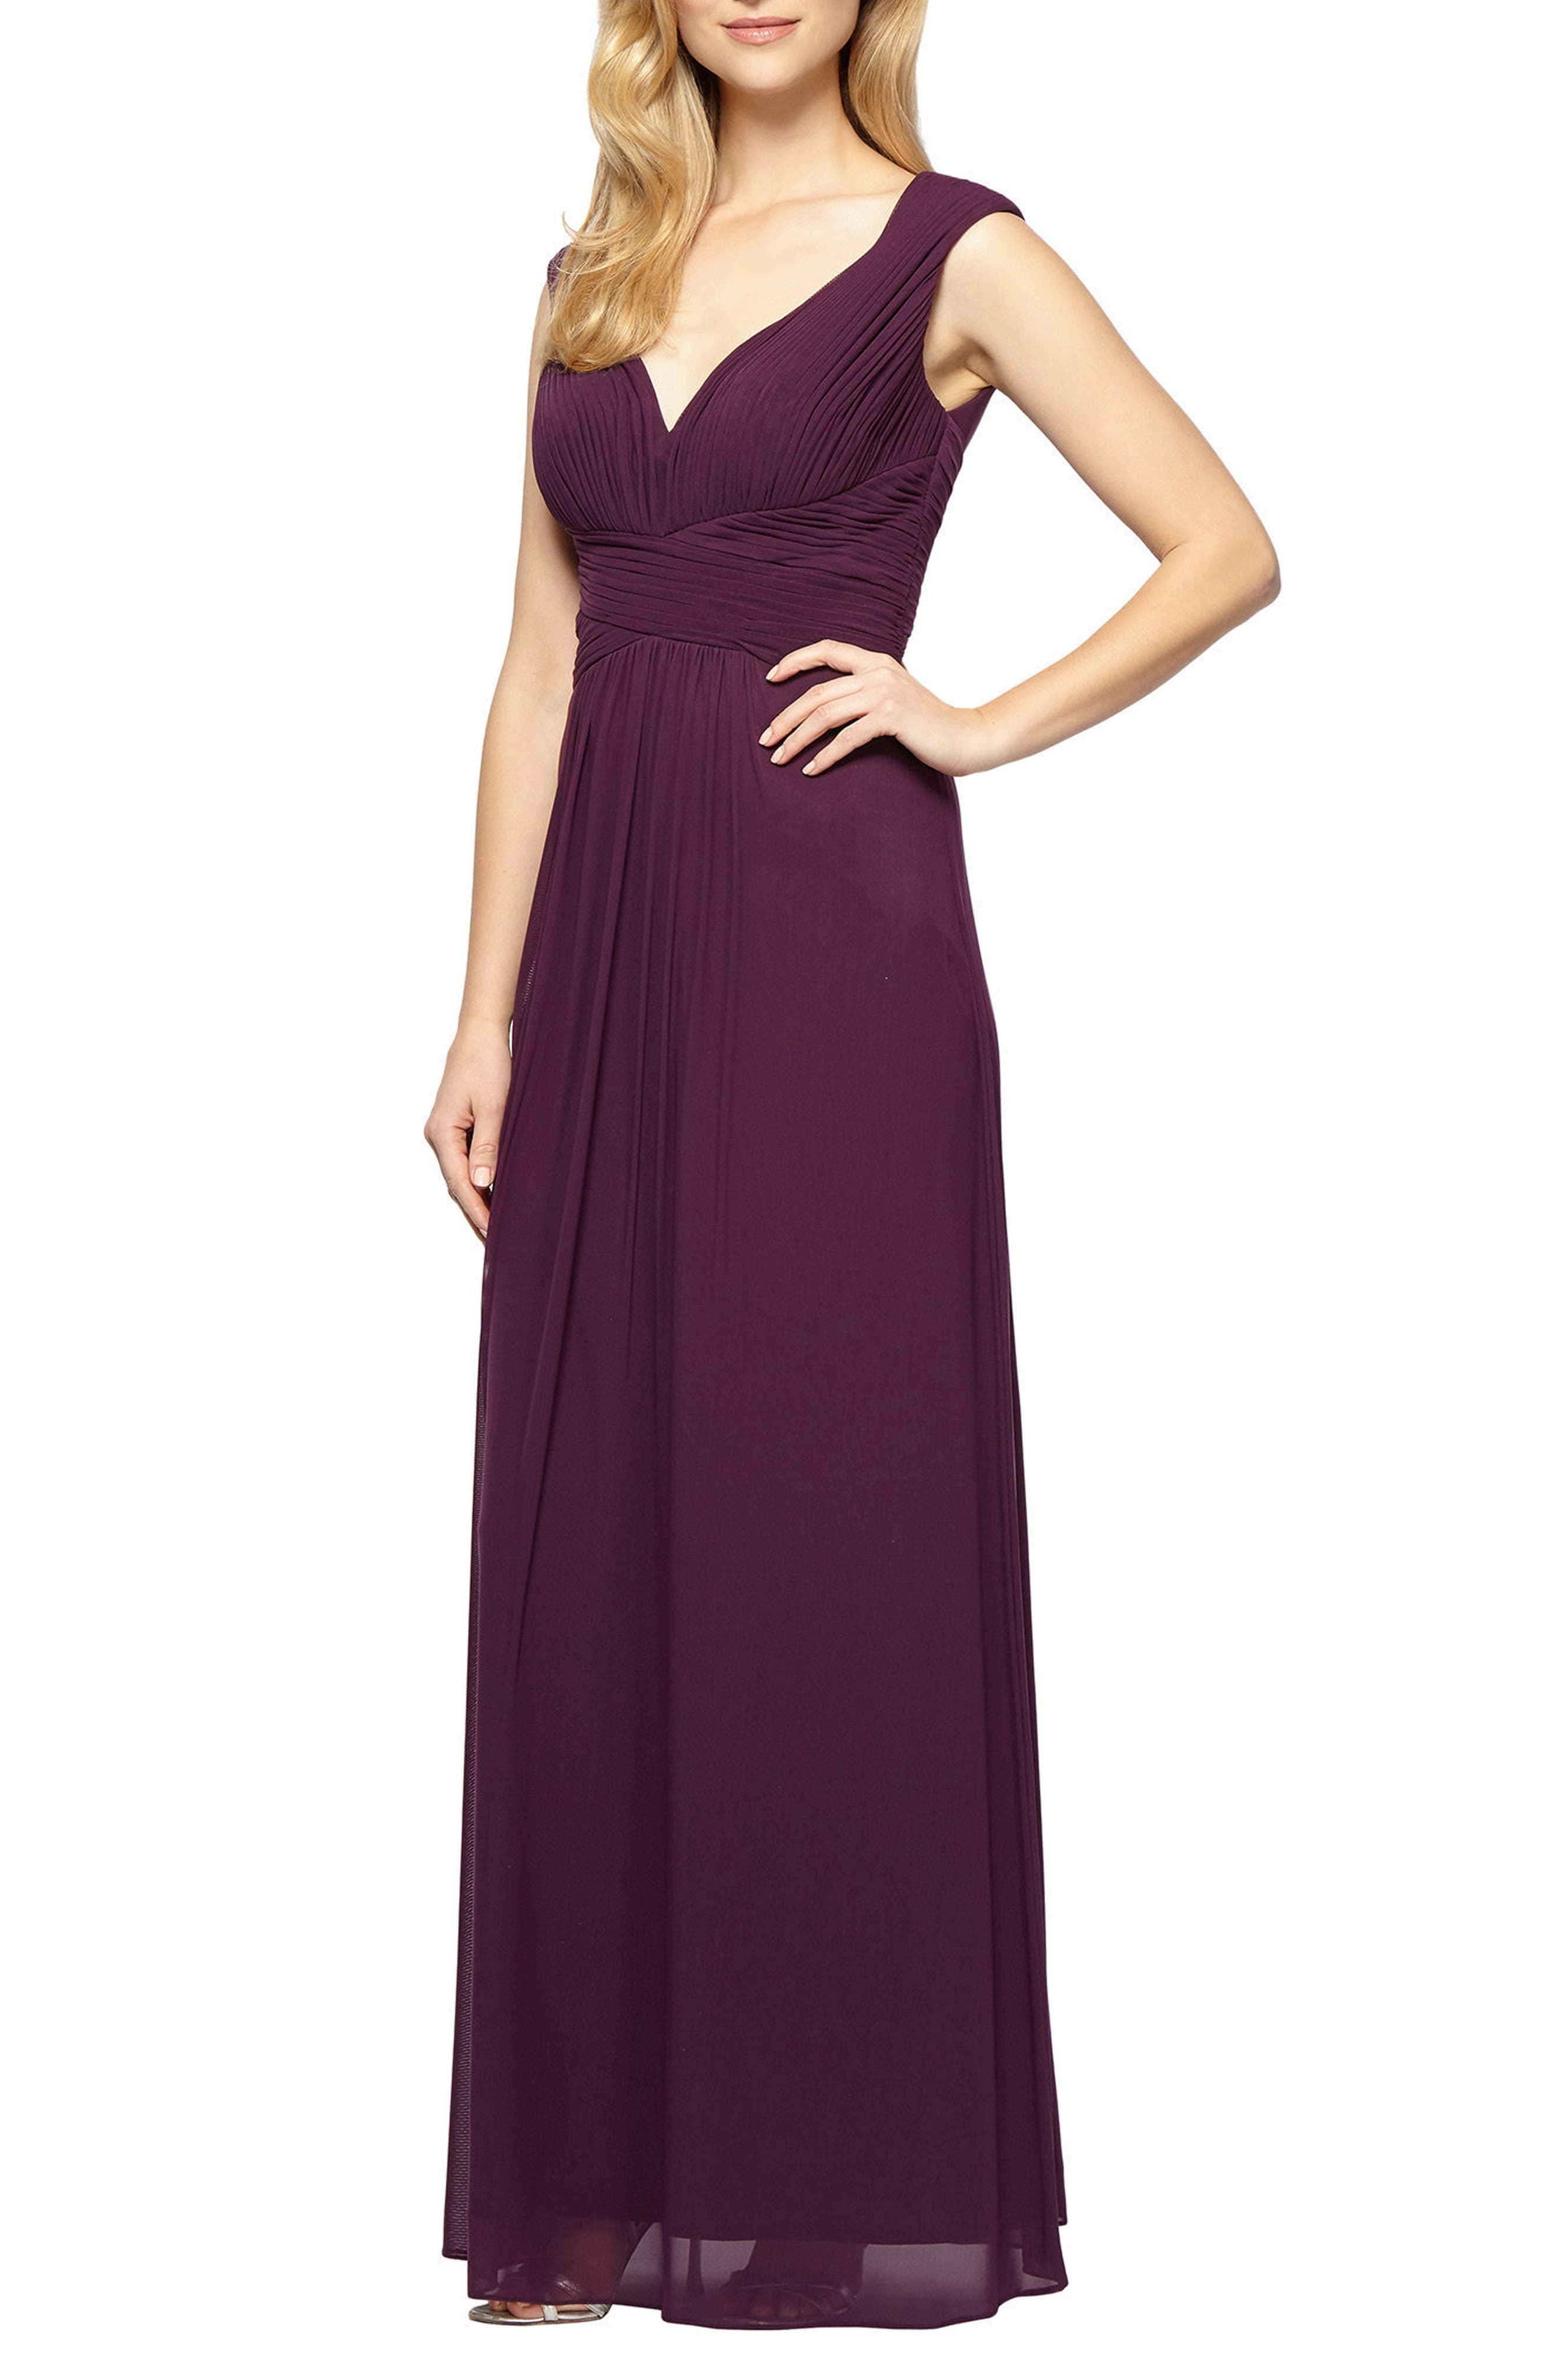 A-Line Gown,                         Main,                         color, Plum